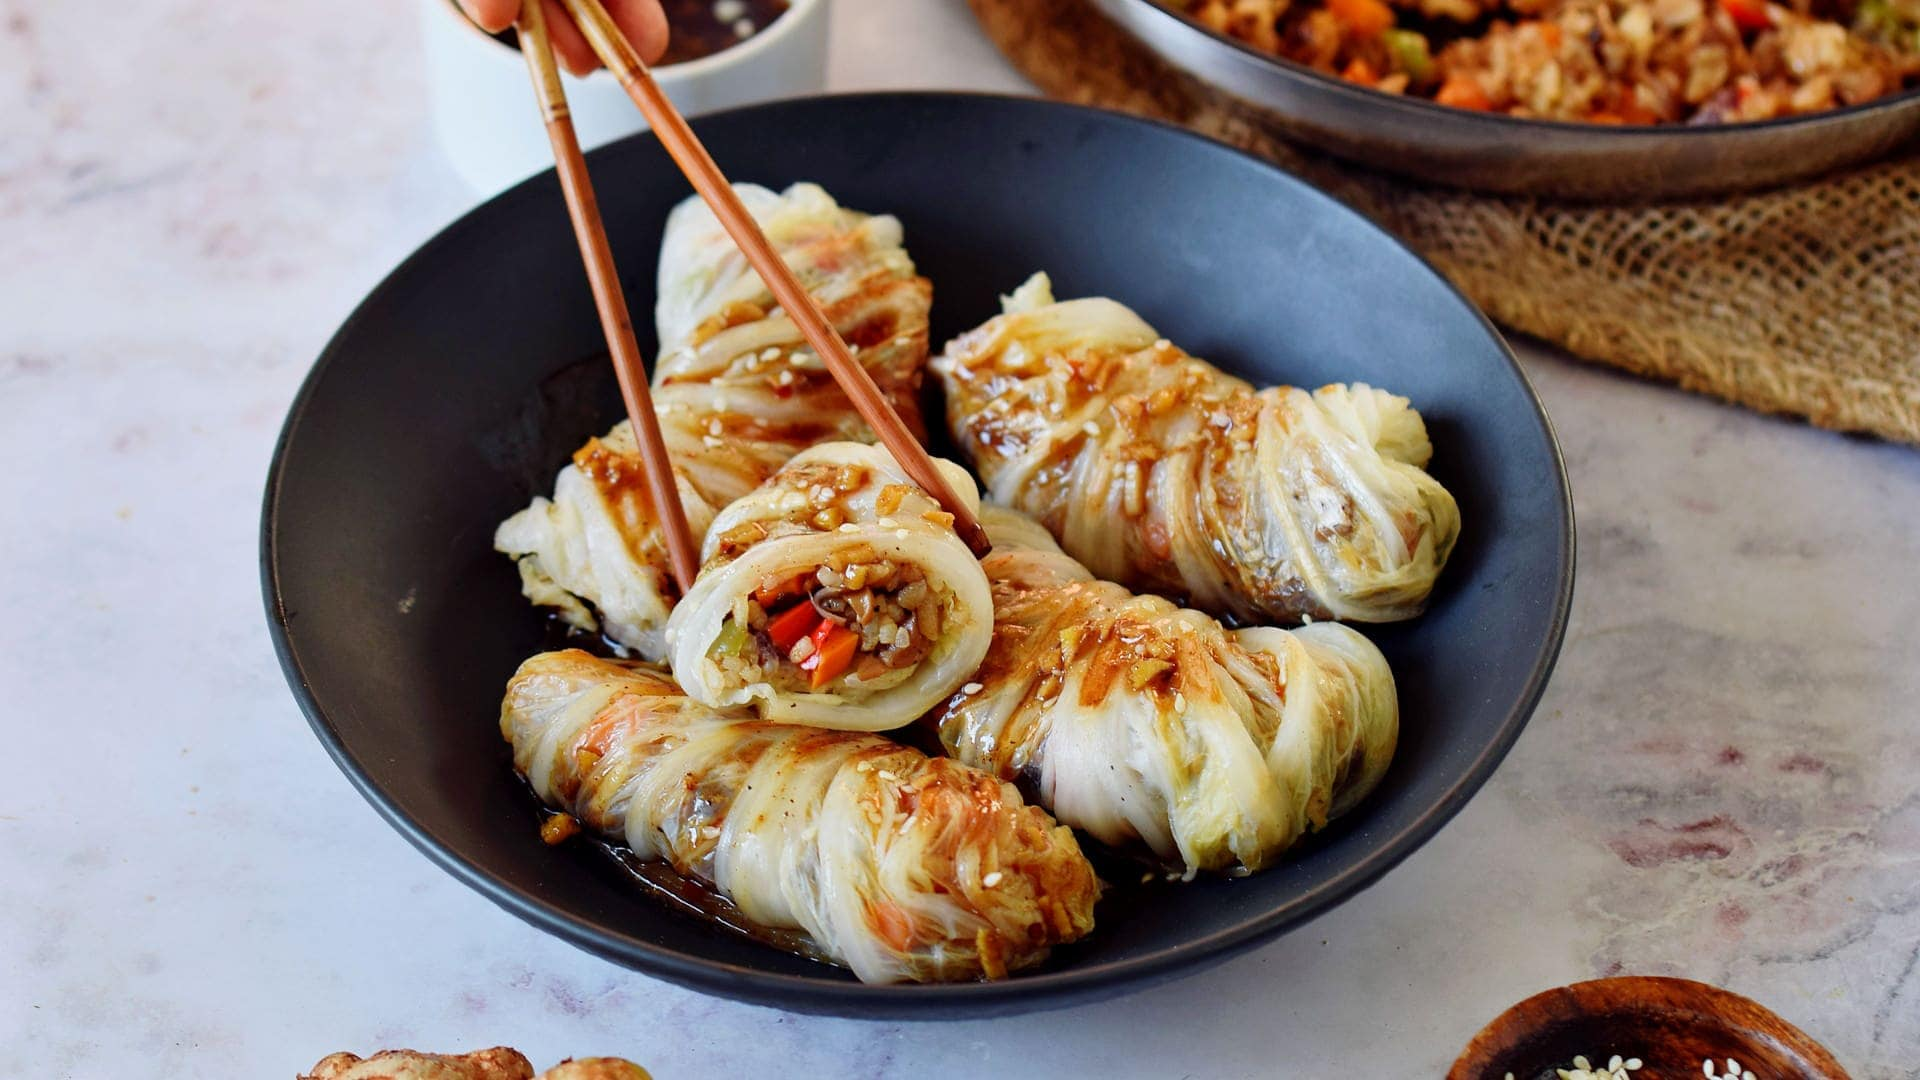 eating cabbage rolls with chopsticks in black bowl